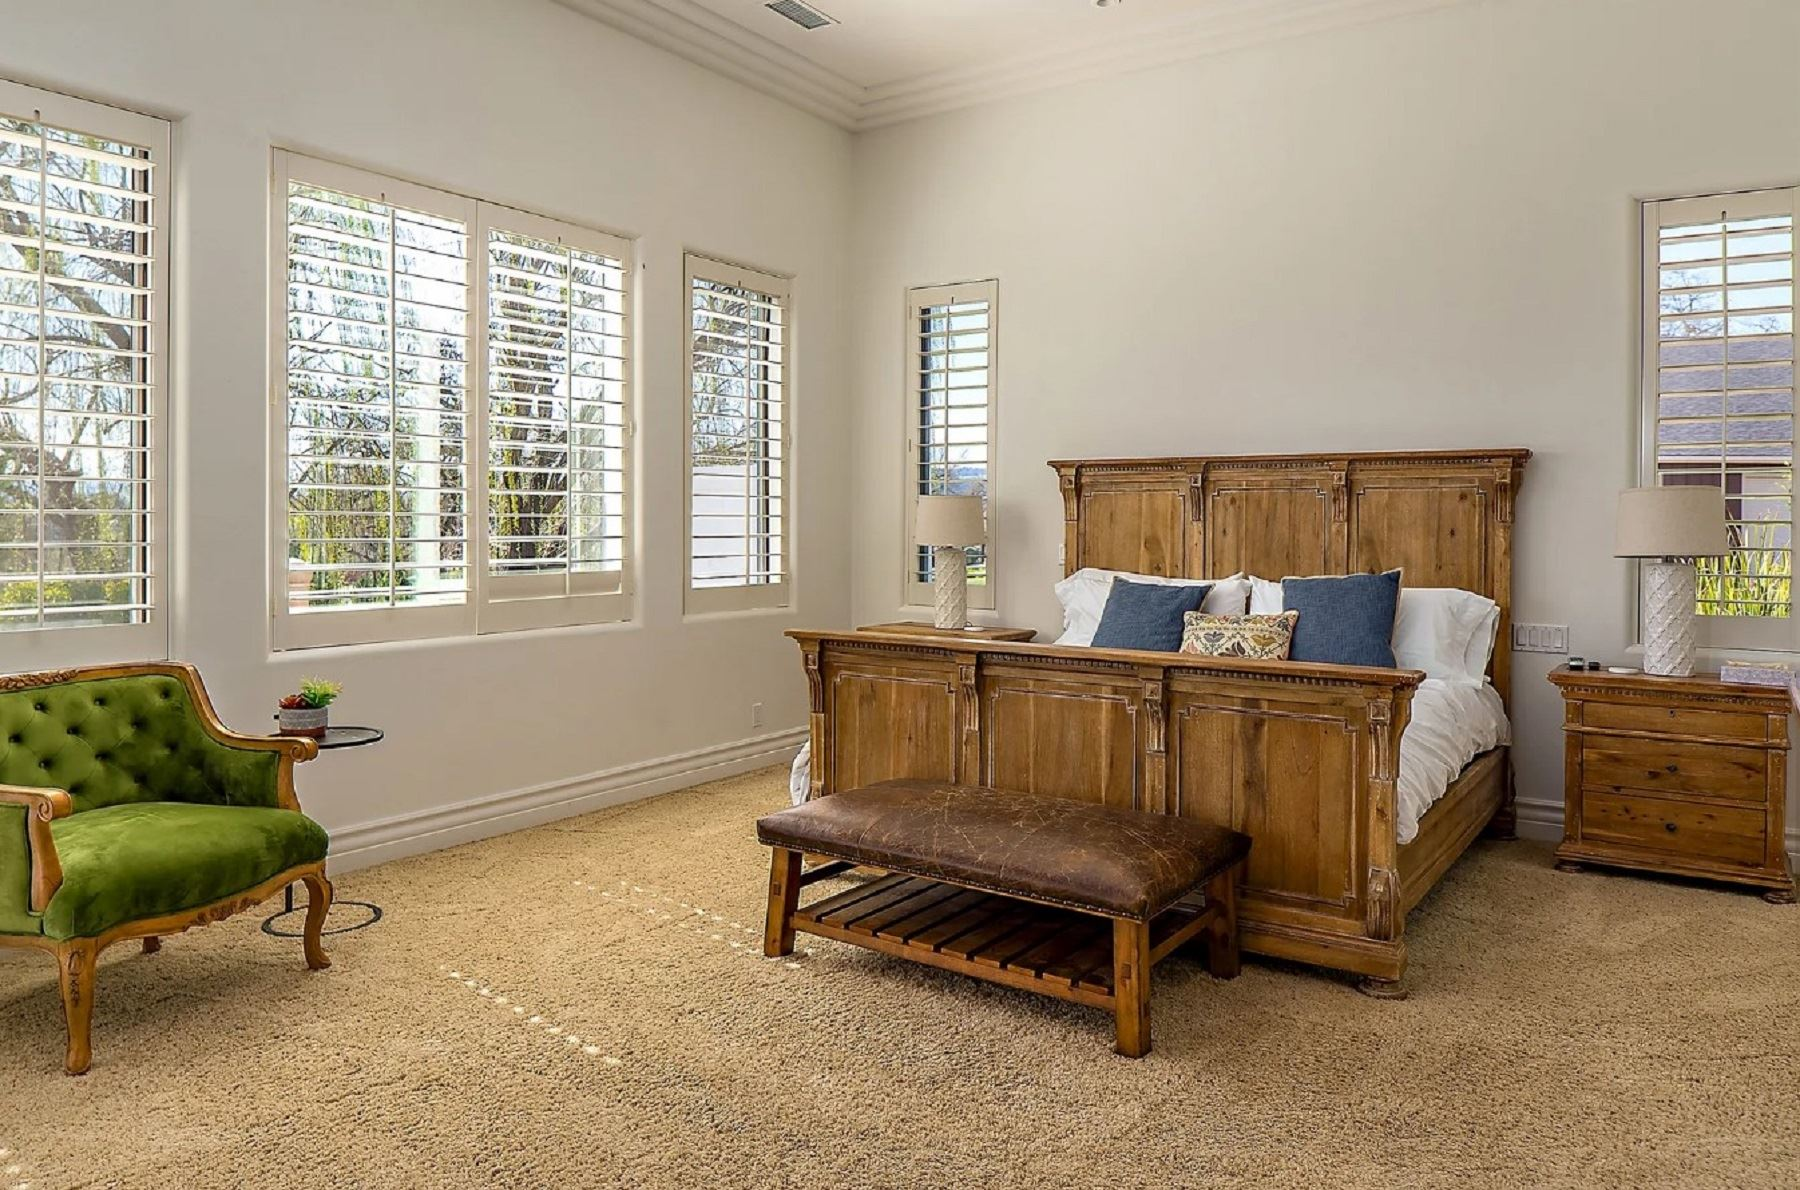 Frontier Farmhouse - Interior - Bedroom with seating area and large windows